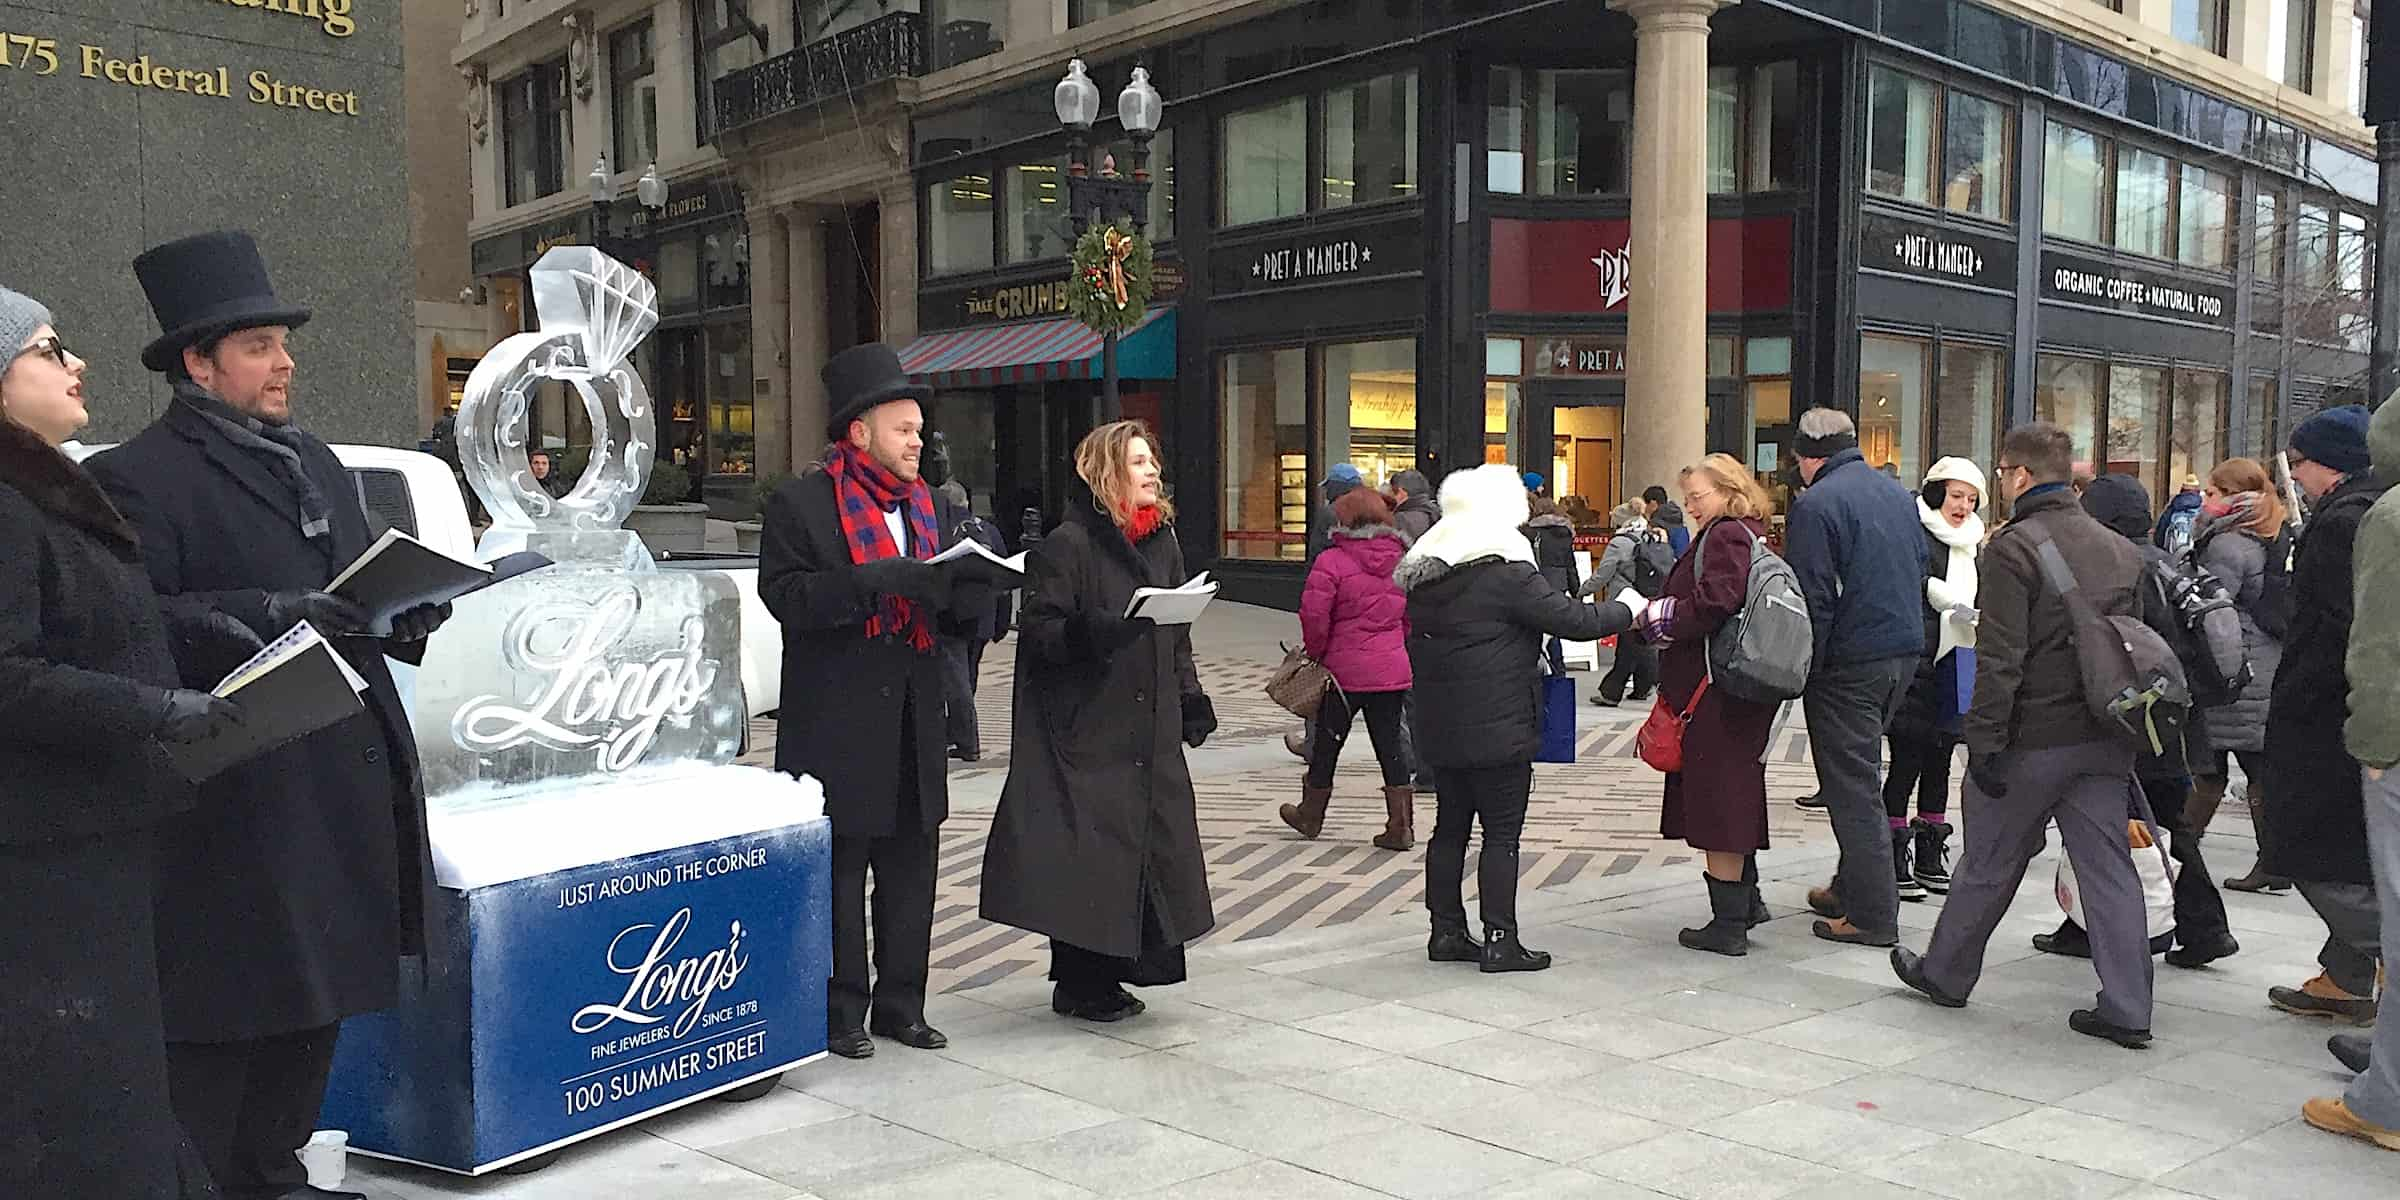 Holiday Season Carolers Experiential Retail Marketing Promotion Idea Company - Boston